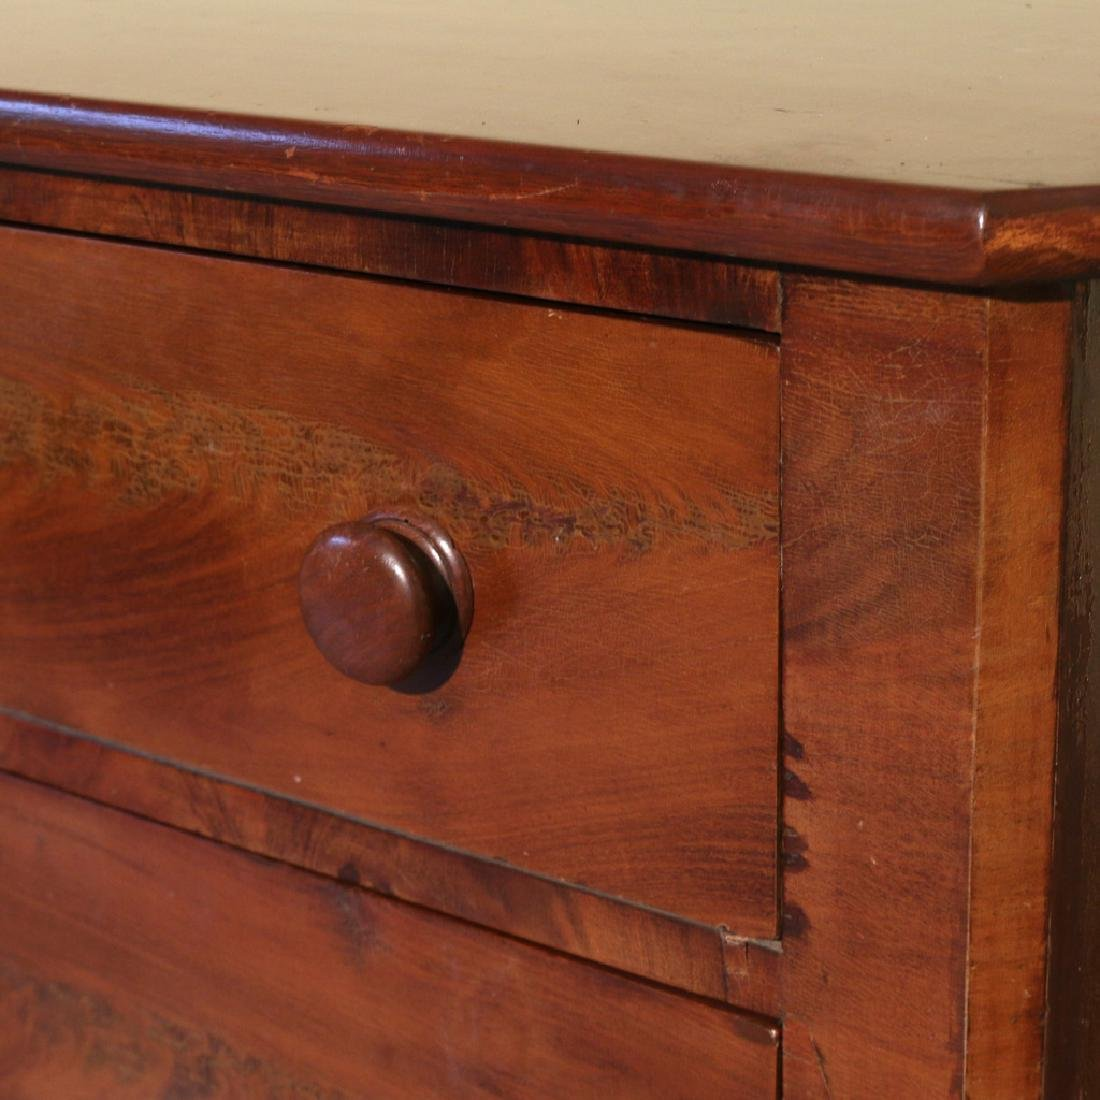 MAHOGANY-VENEER 3-DRAWER CHEST - 2